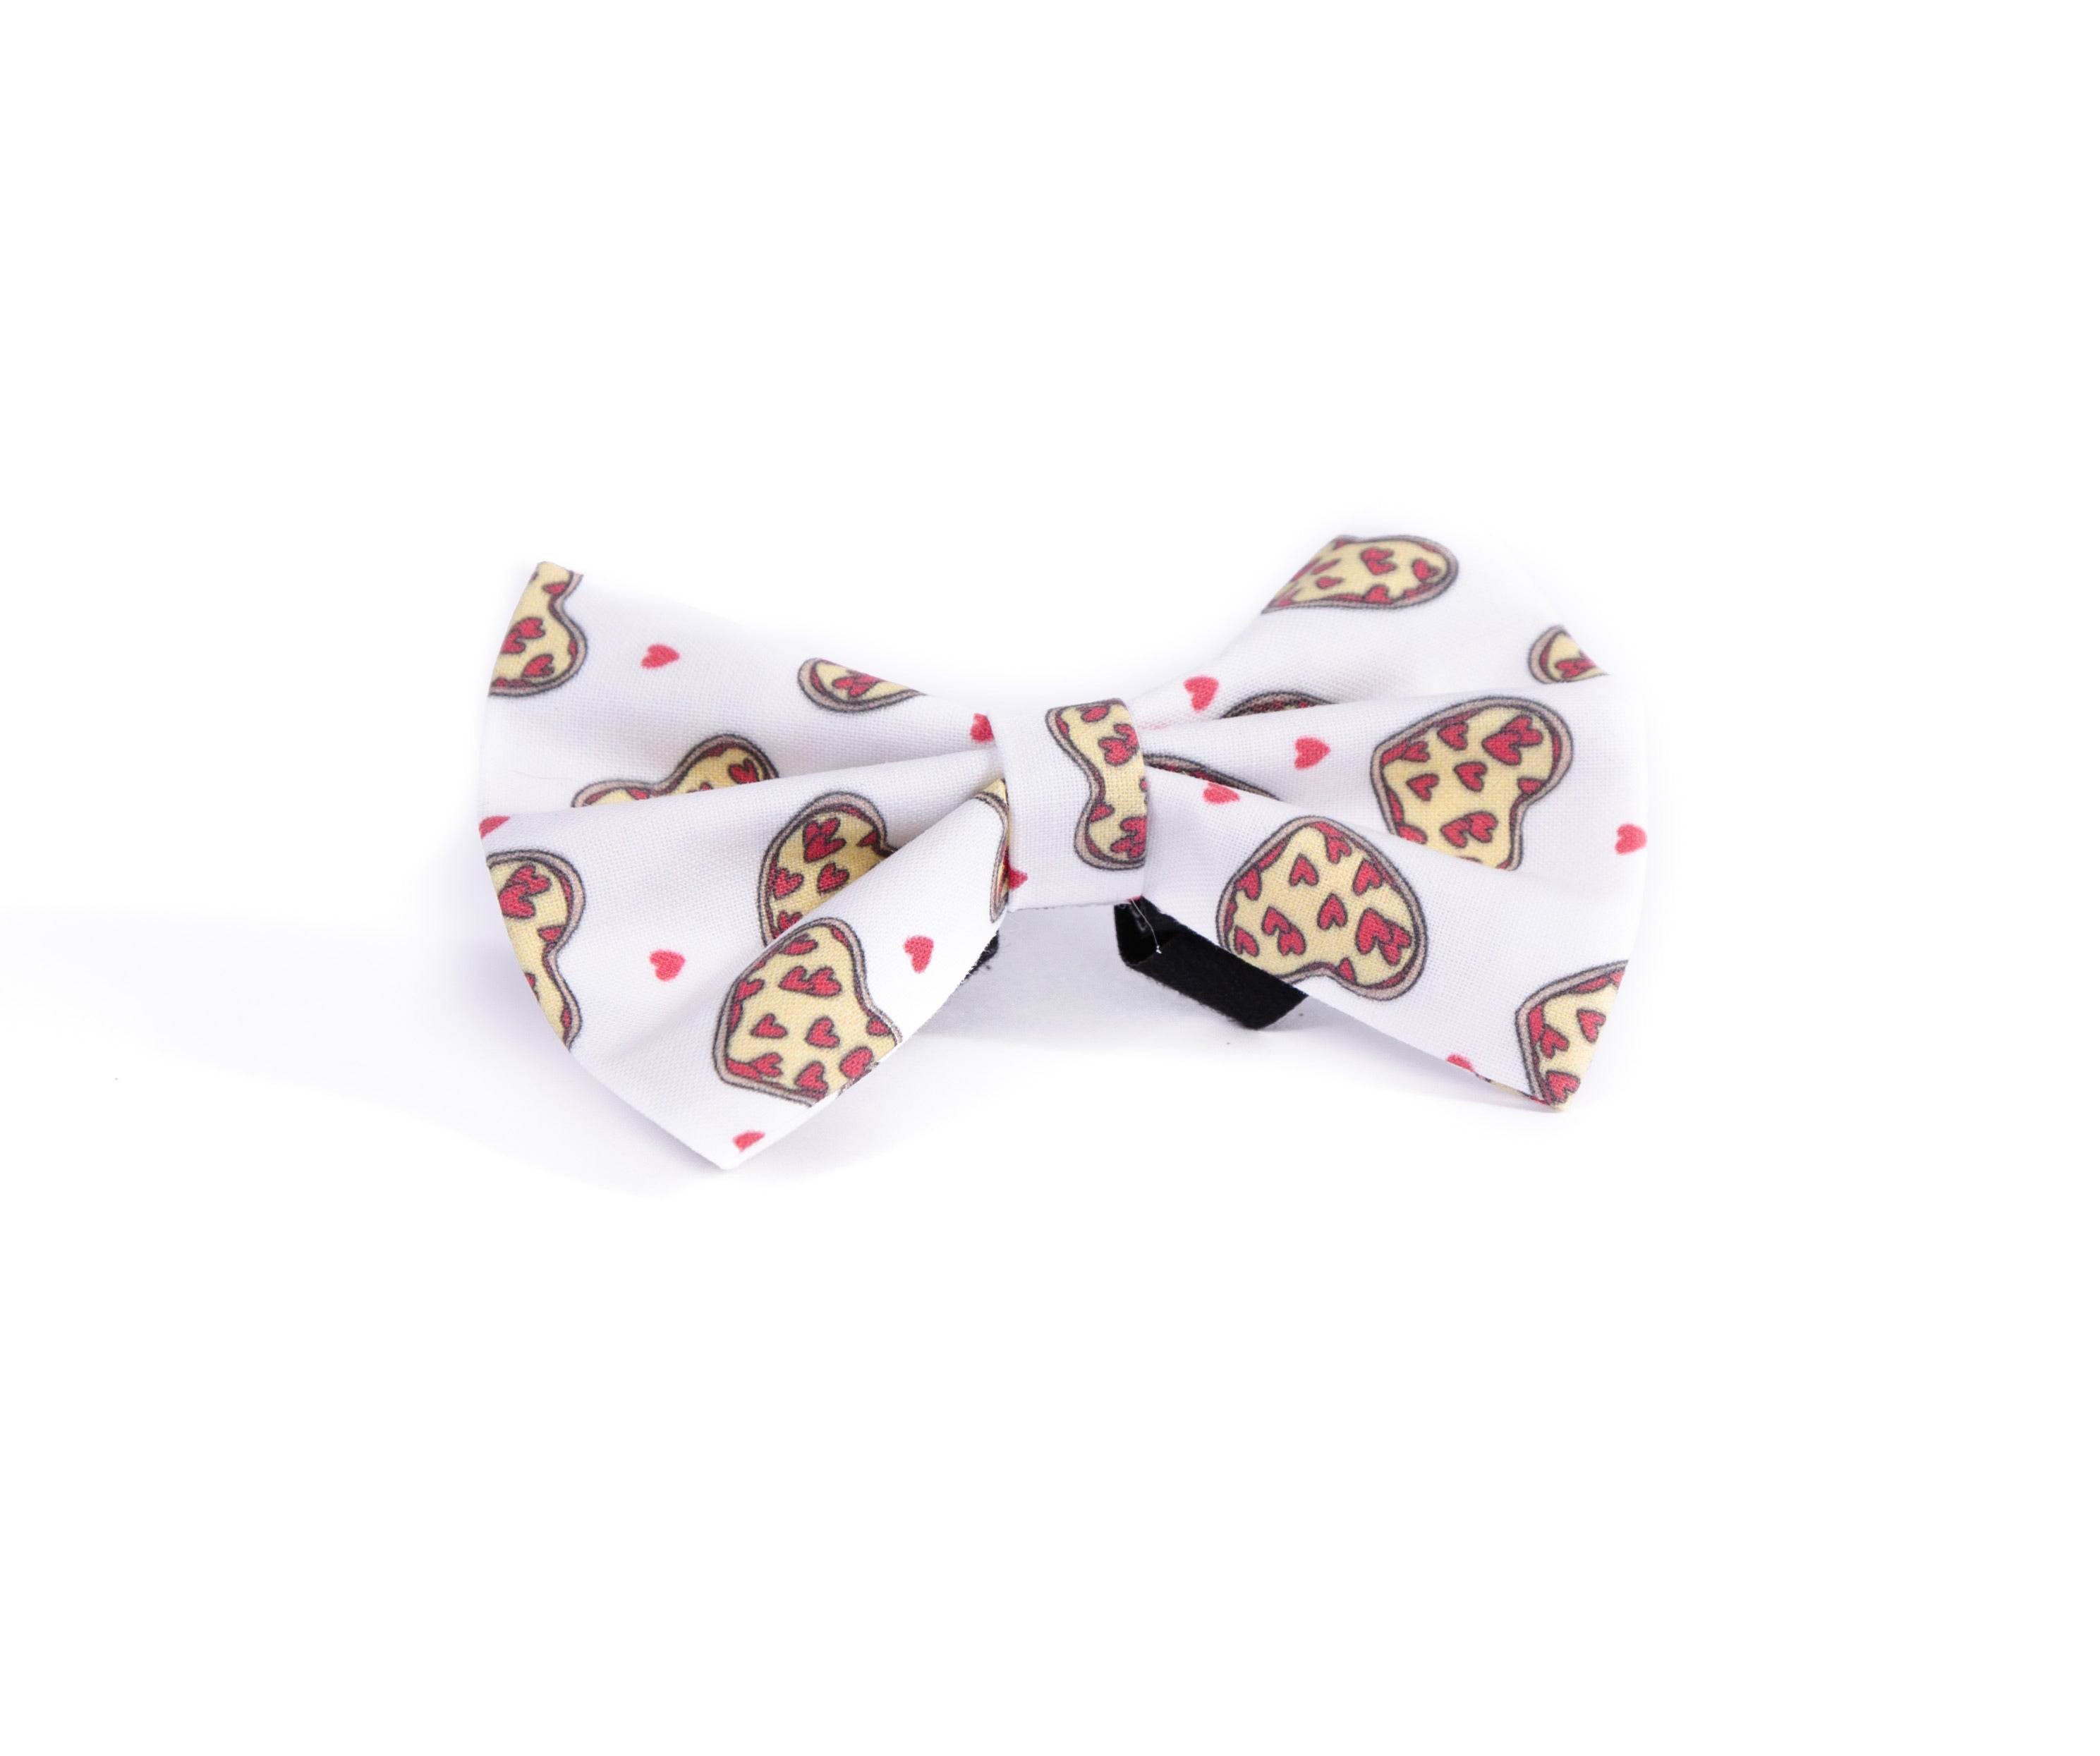 Love at first bite 🍕 - Bow tie (NEW)